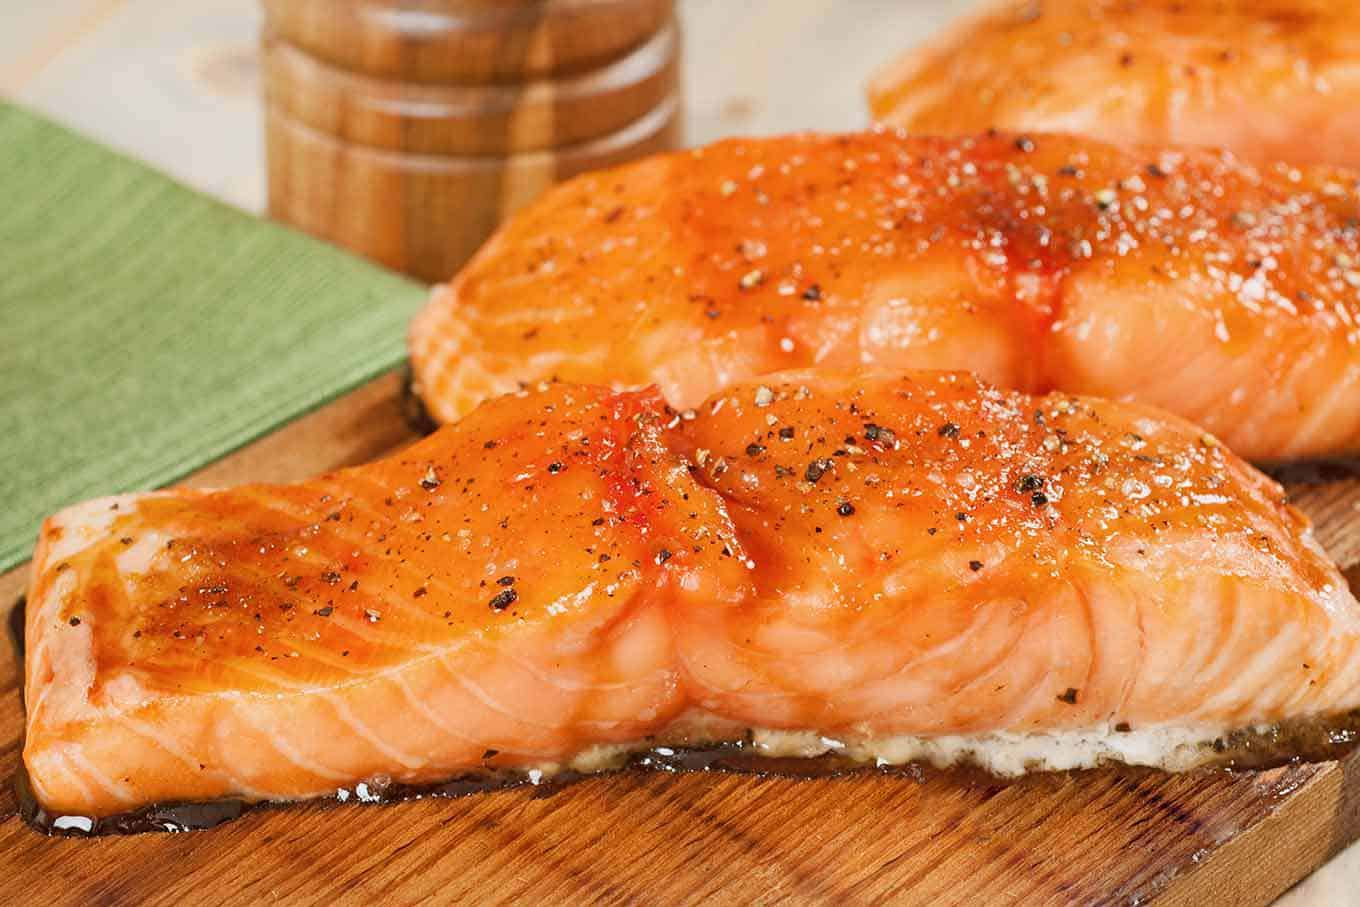 A side view of two salmon fillets that have been seasoned and grilled on a cedar plank.